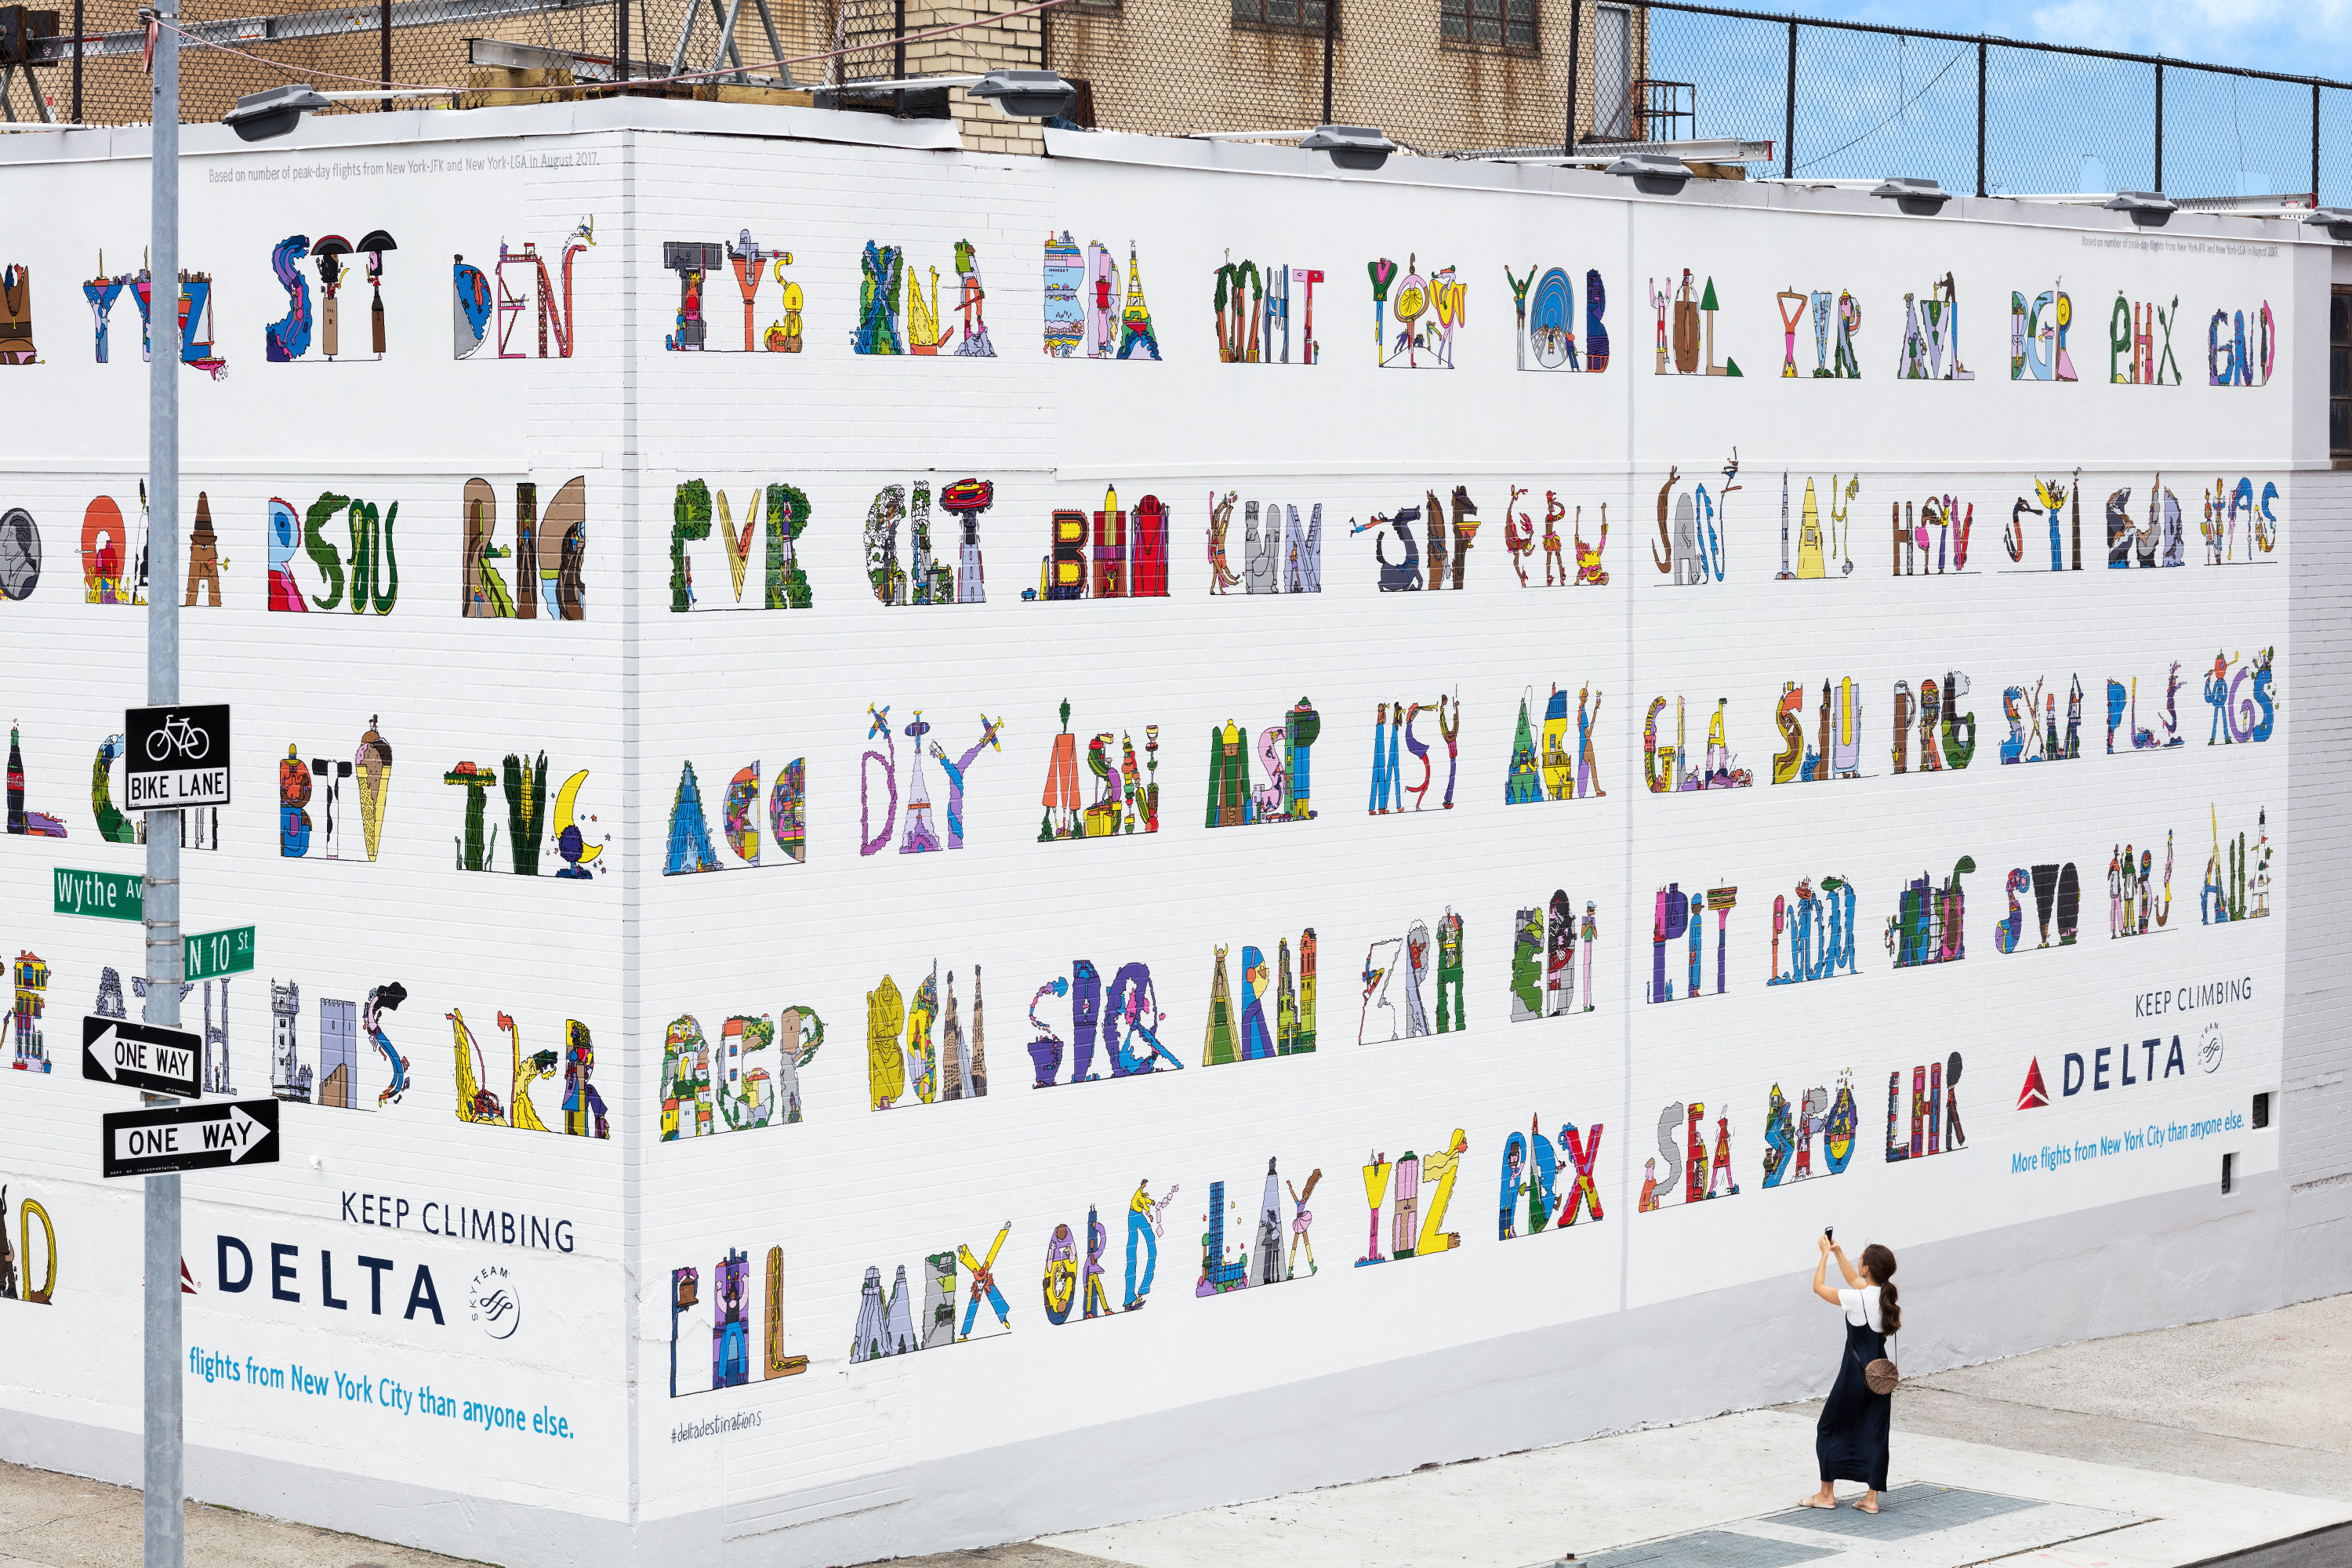 Delta has introduced an Airport Codes wall in Brooklyn. Image: Wieden+Kennedy